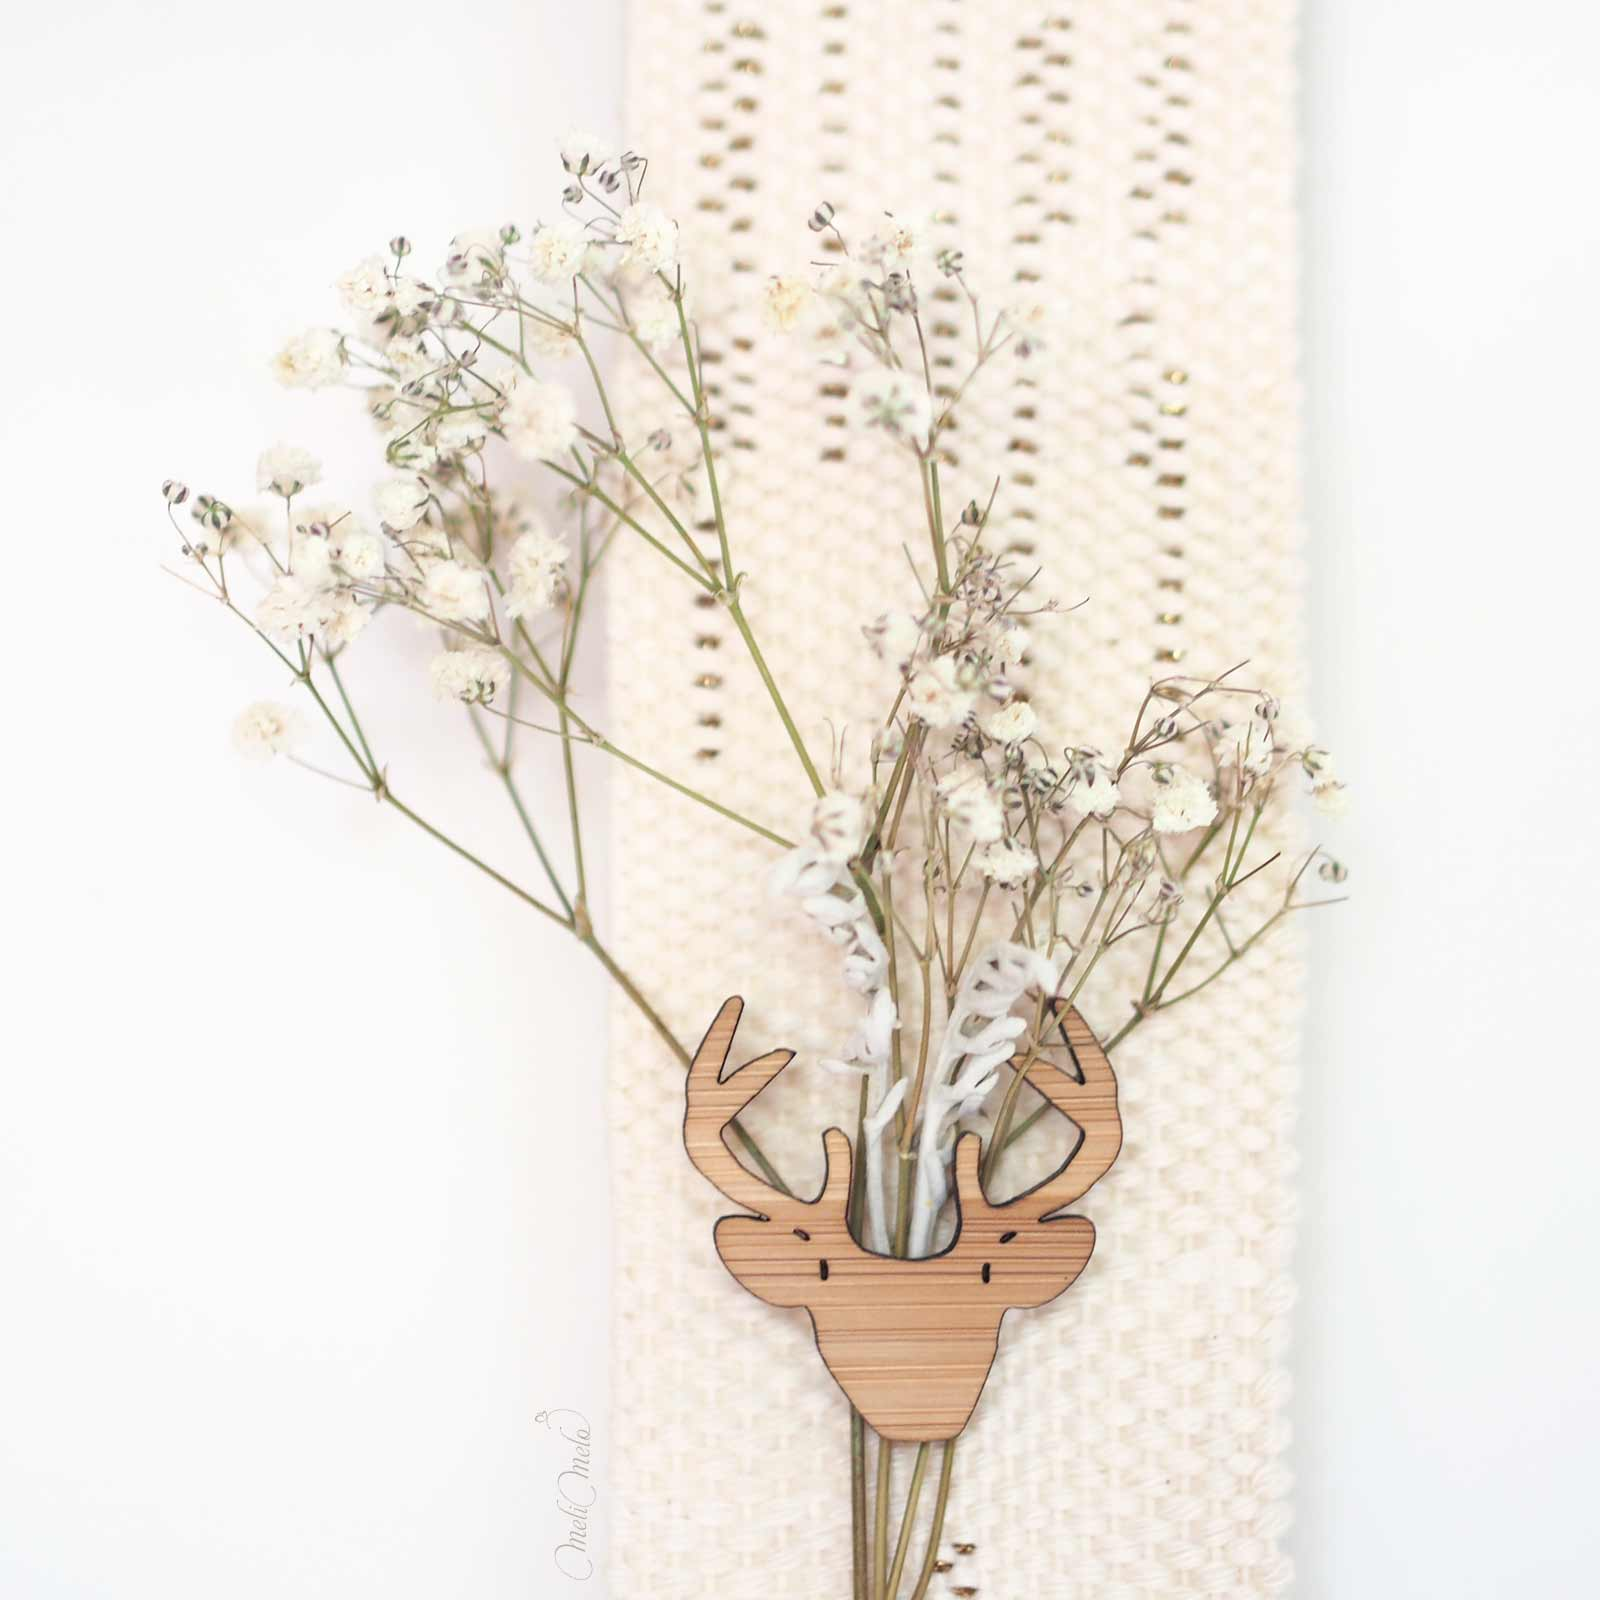 tissage coton or cerf detail bambou onehappyleaf gypsophile laboutiquedemelimelo